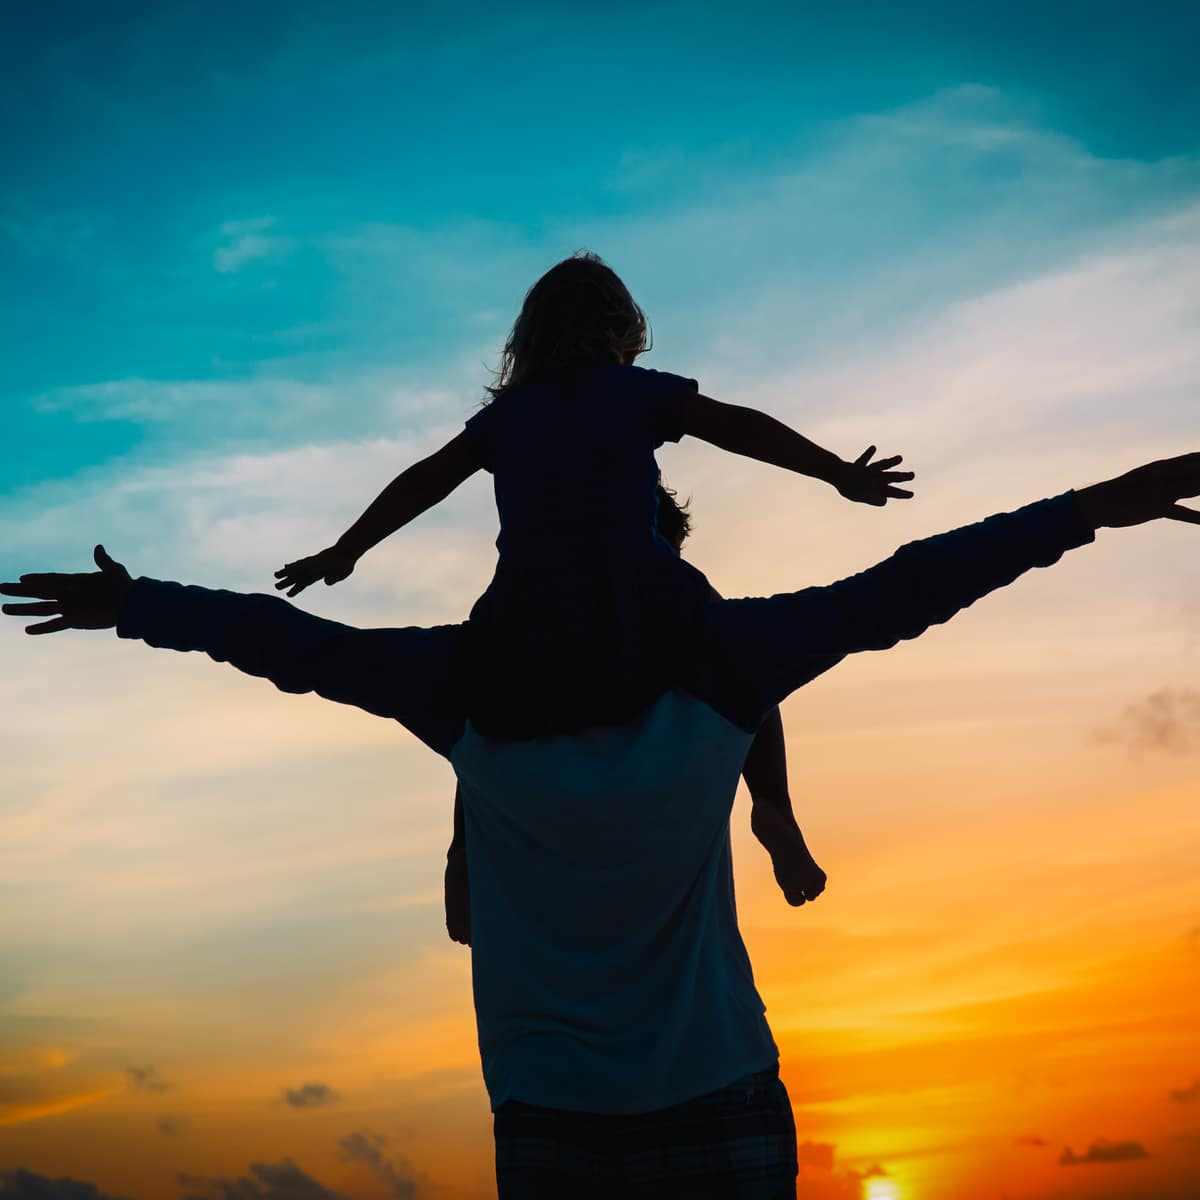 Dad with Daughter on Shoulders with Sunset